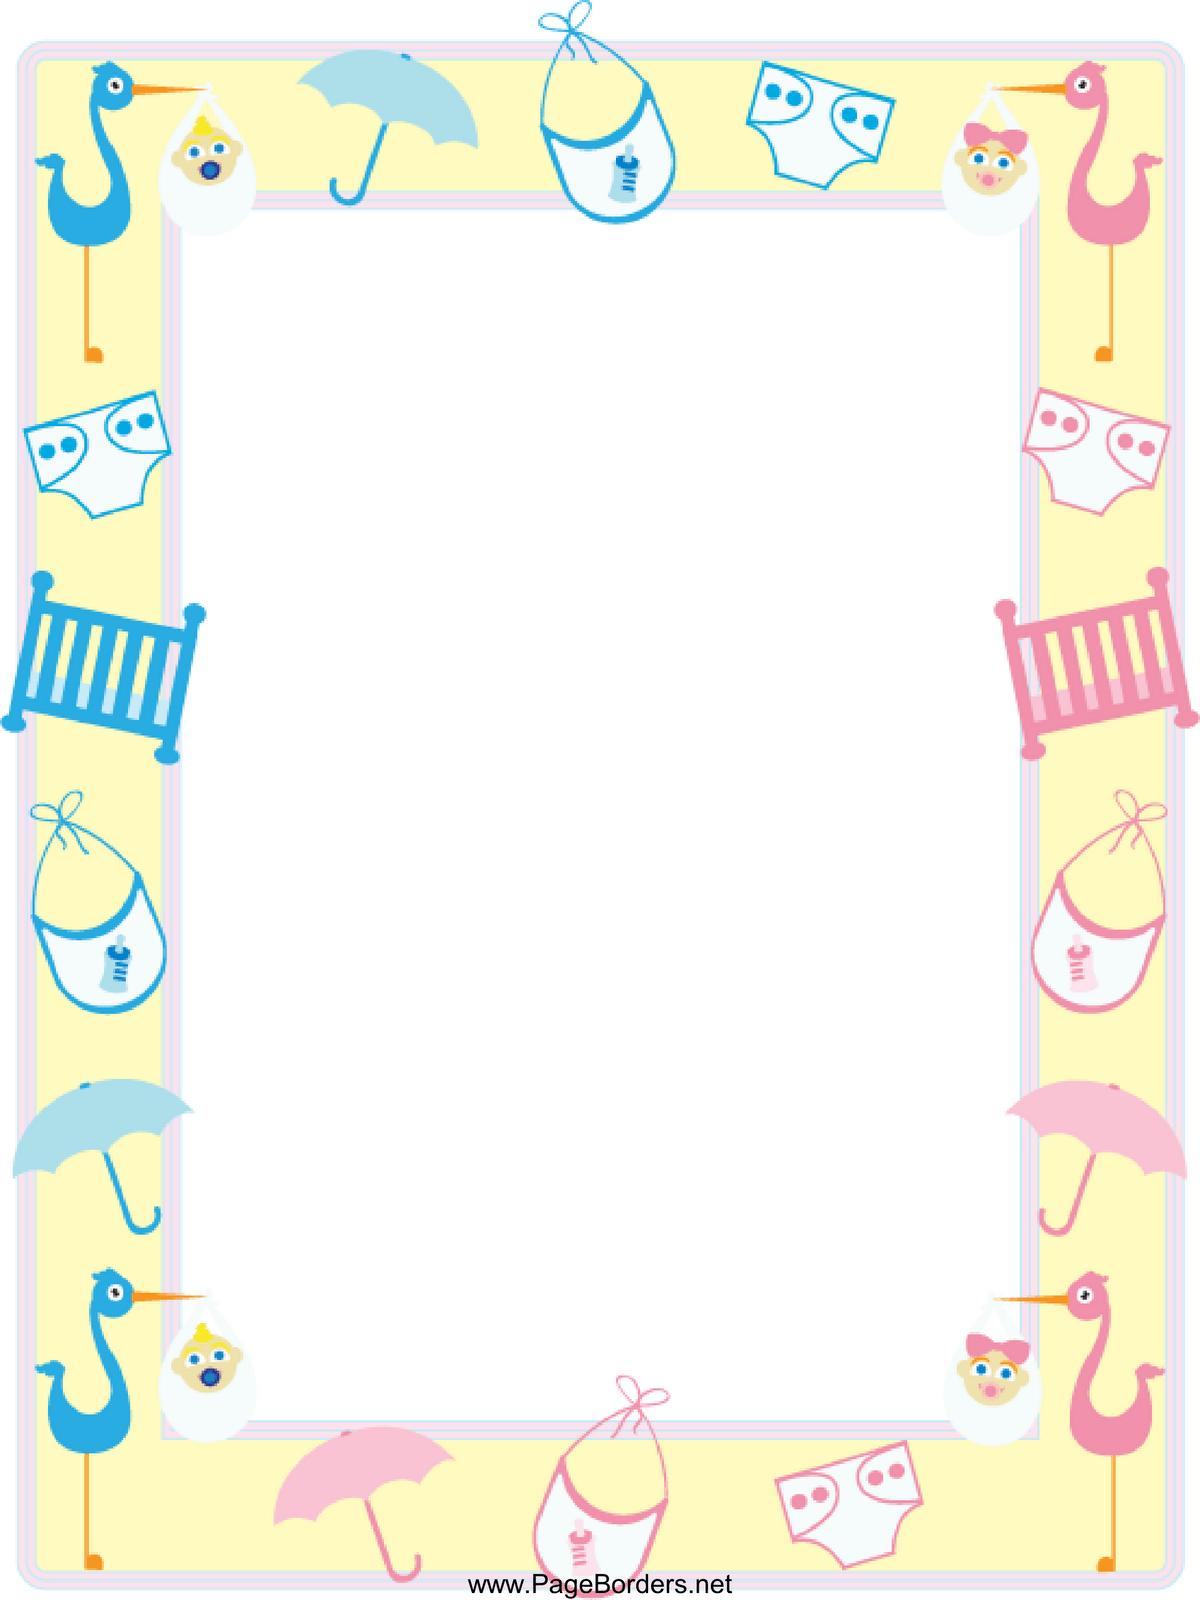 Free Baby Frames Cliparts, Download Free Clip Art, Free Clip.